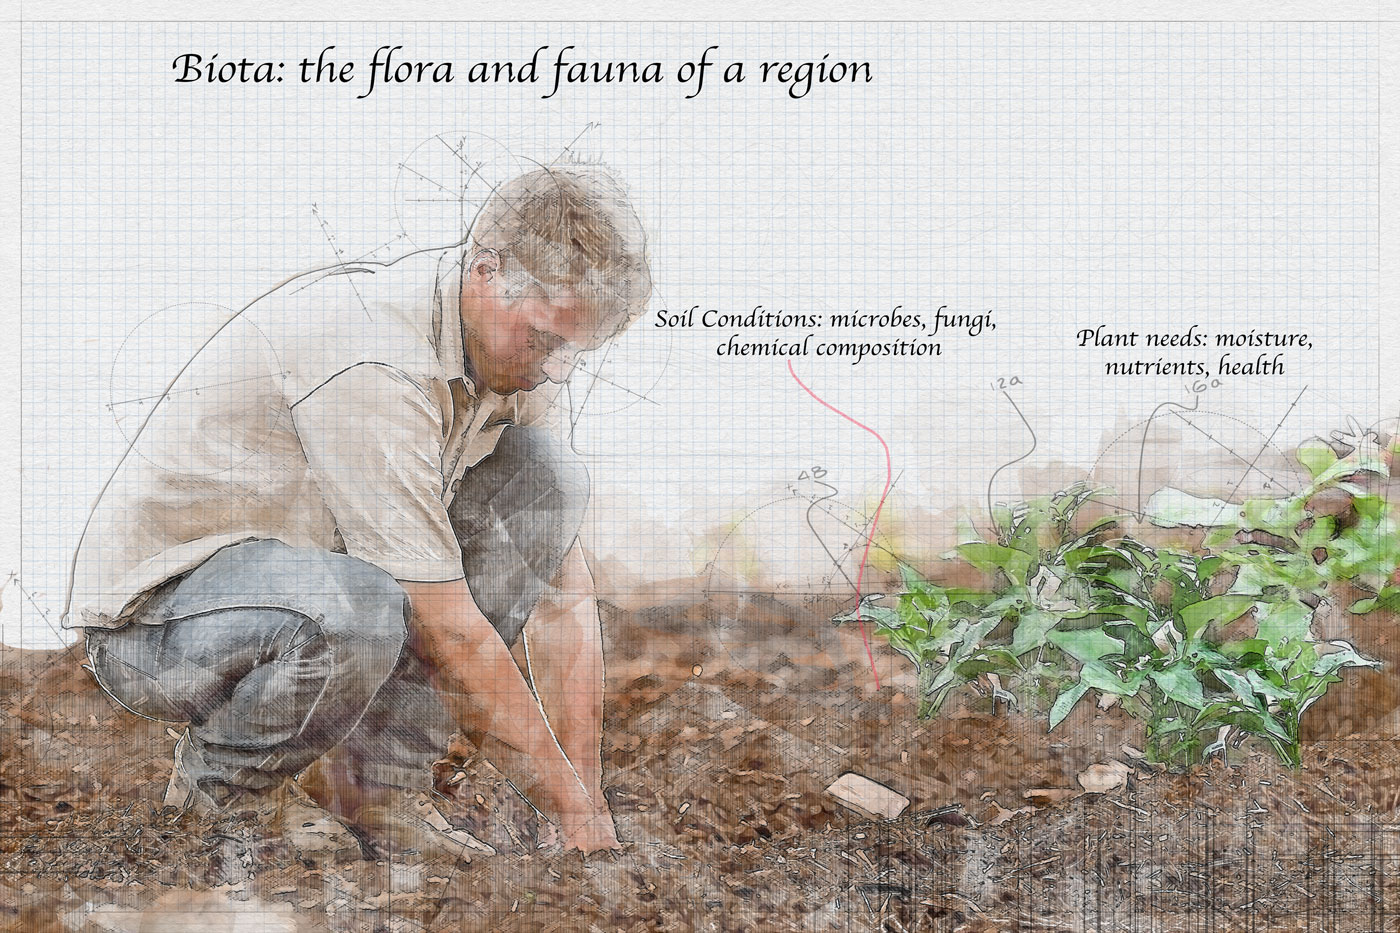 Biota: the flora and fauna of a region Determining Soil Conditions: microbes, fungi, chemical composition.  Understanding plant needs: moisture, nutrients, health.